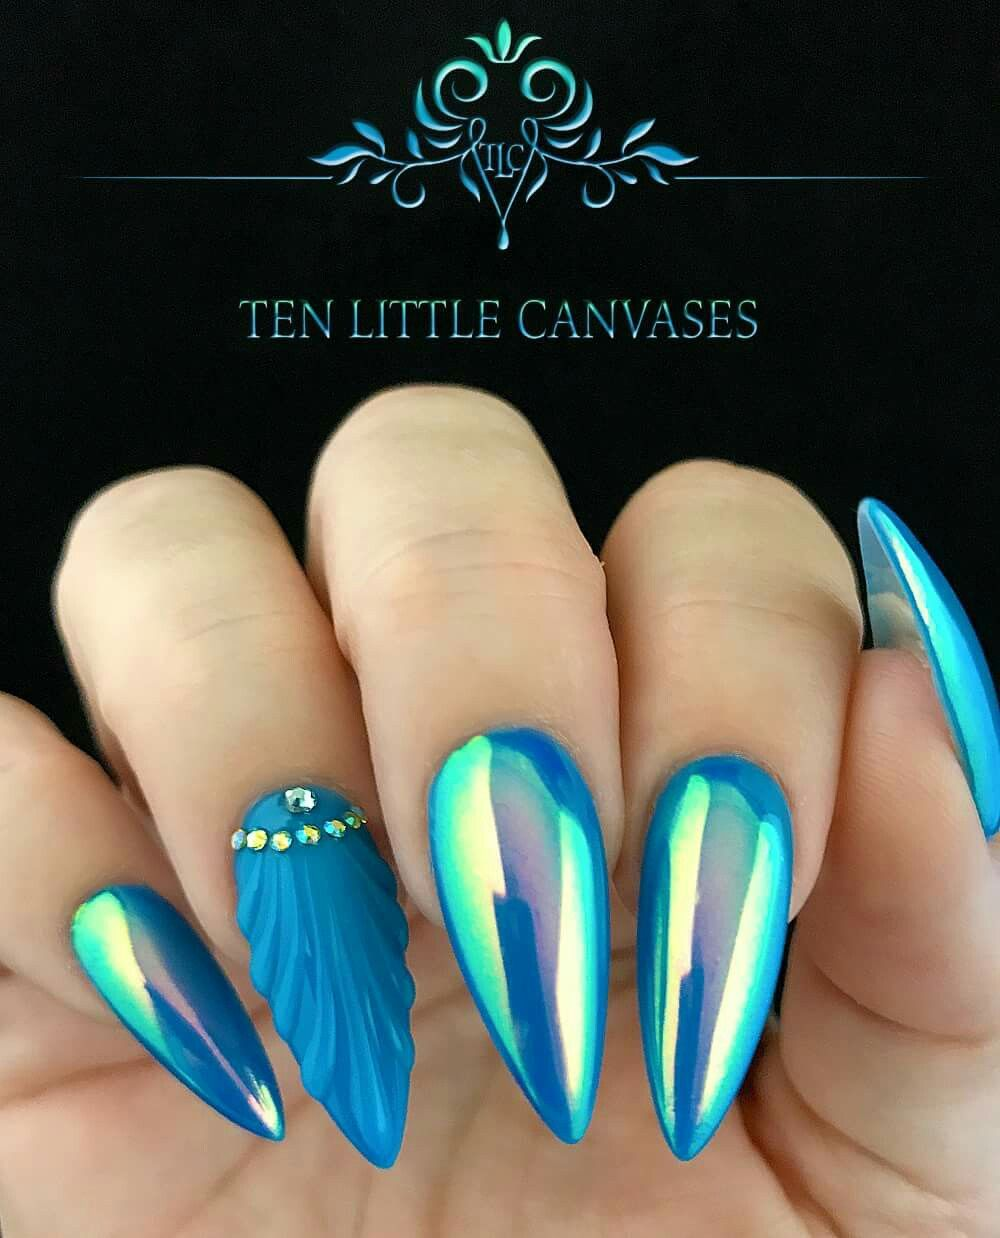 Like what you see? Follow me for more: @uhairofficial | nail art ...